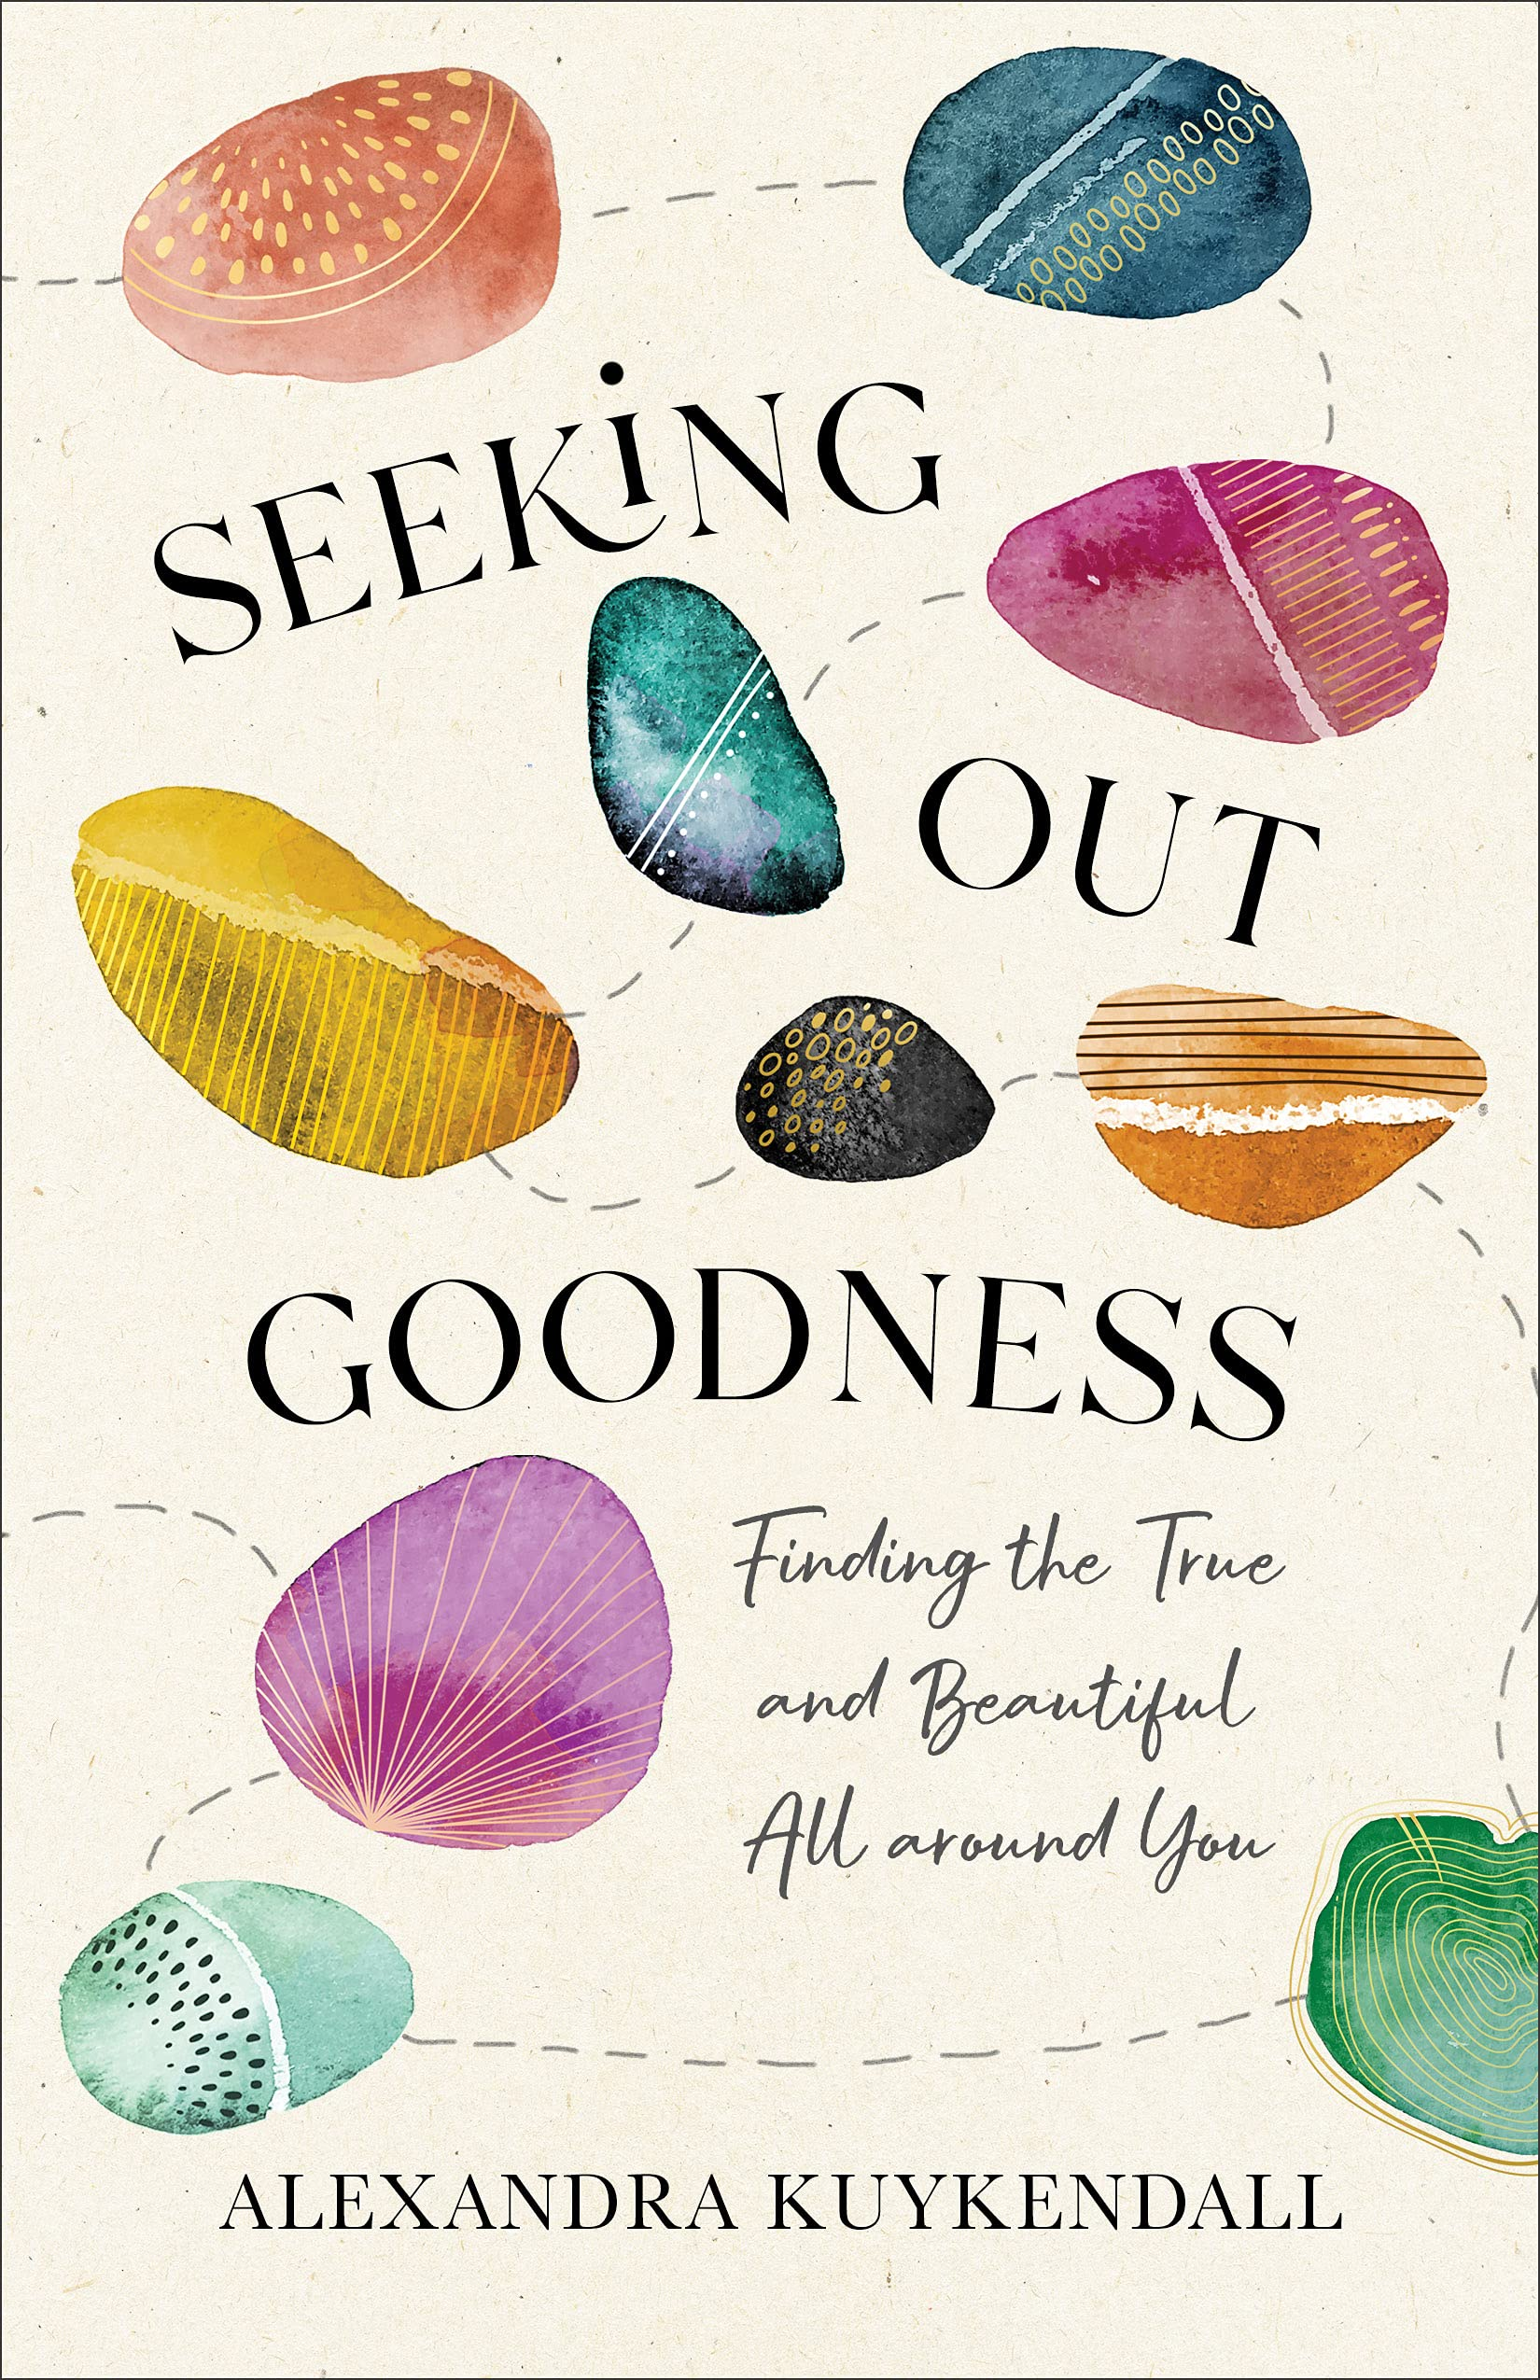 Seeking Out Goodness: Finding the True and Beautiful All around You